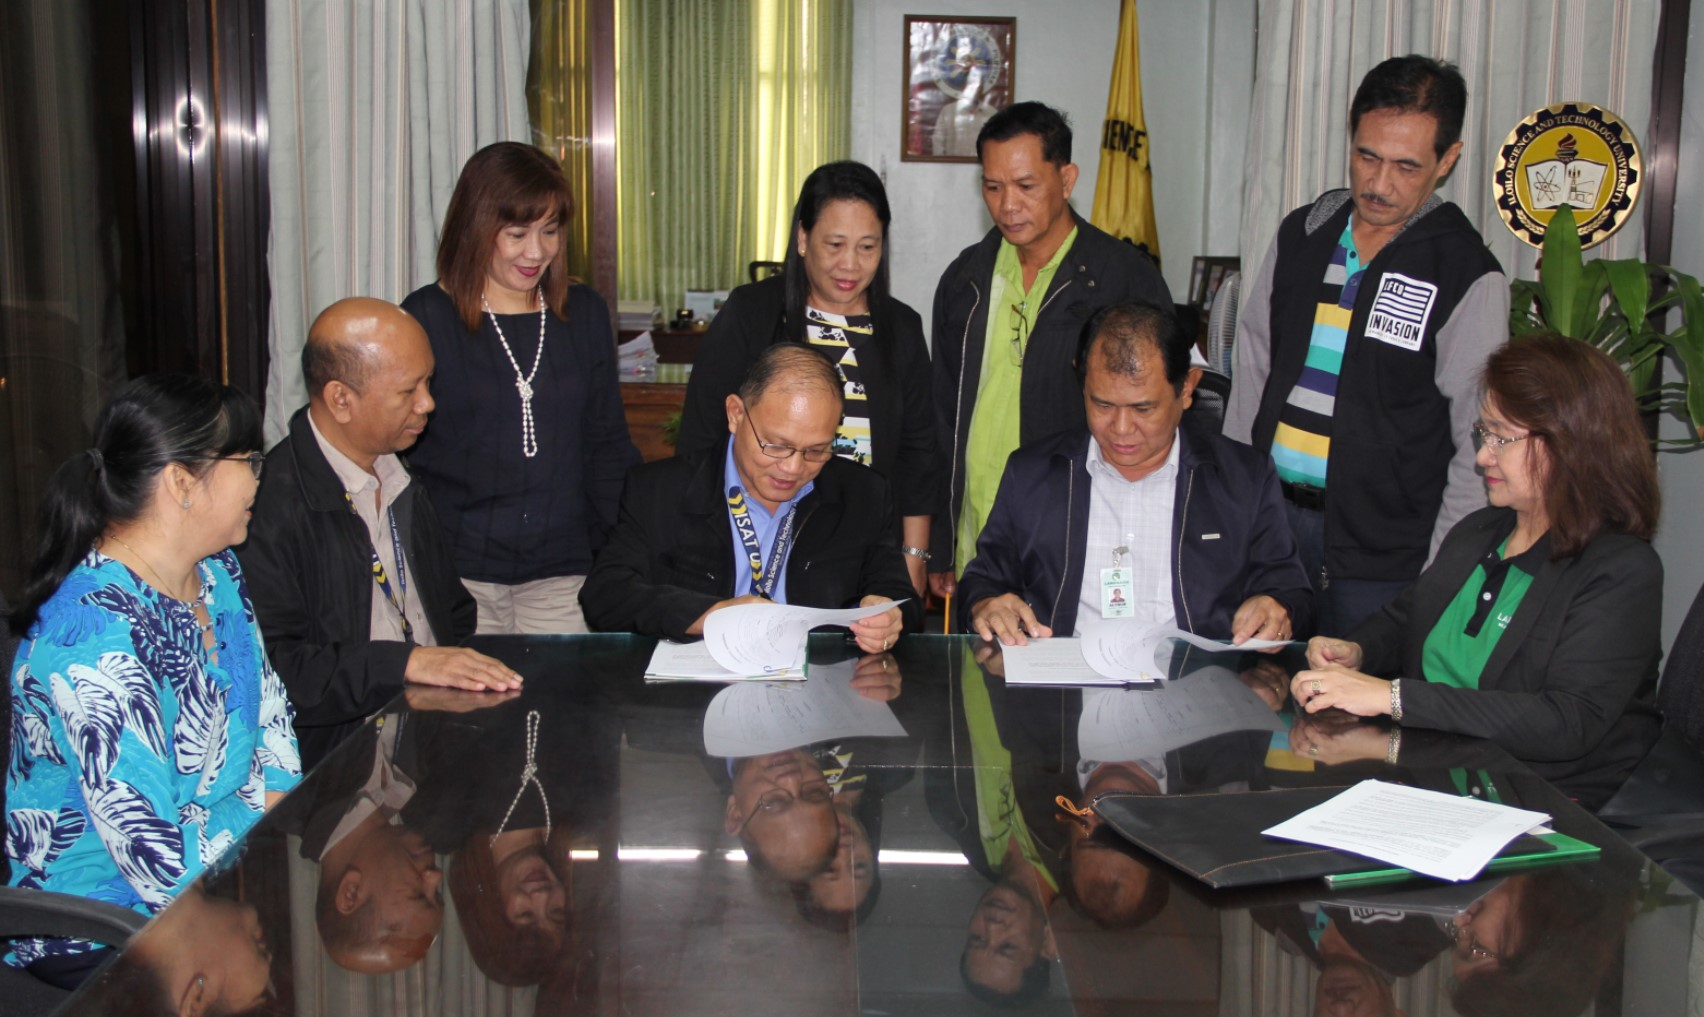 Dr. Raul F. Muyong and Mr. Althon C. Ferolino, Head, LBP West Visayas Branch Group, sign the Memorandum of Agreement for a 25 year usufruct of the 600 square meter lot for Land Bank Branch at ISAT U Miagao Campus. Land Bank of the Philippines will give a Php 5 million goodwill for the construction of a mini grandstand at the school ground. The ceremony is witnessed by (l-r) Dr. Sandra T. Examen, Miagao Campus Administrator; Dr. Gabriel M. Salistre, Jr., VPAF; Maria Luisa N. Eiman, Chief Administrative Officer, Miagao Campus; Dr. Herminia Falsario, Mr. Ely Ciasico, Mr. Arcenio Montano, Jr. and Ms. Rowena H. Areno, Branch Manager, LBP Miagao Branch.